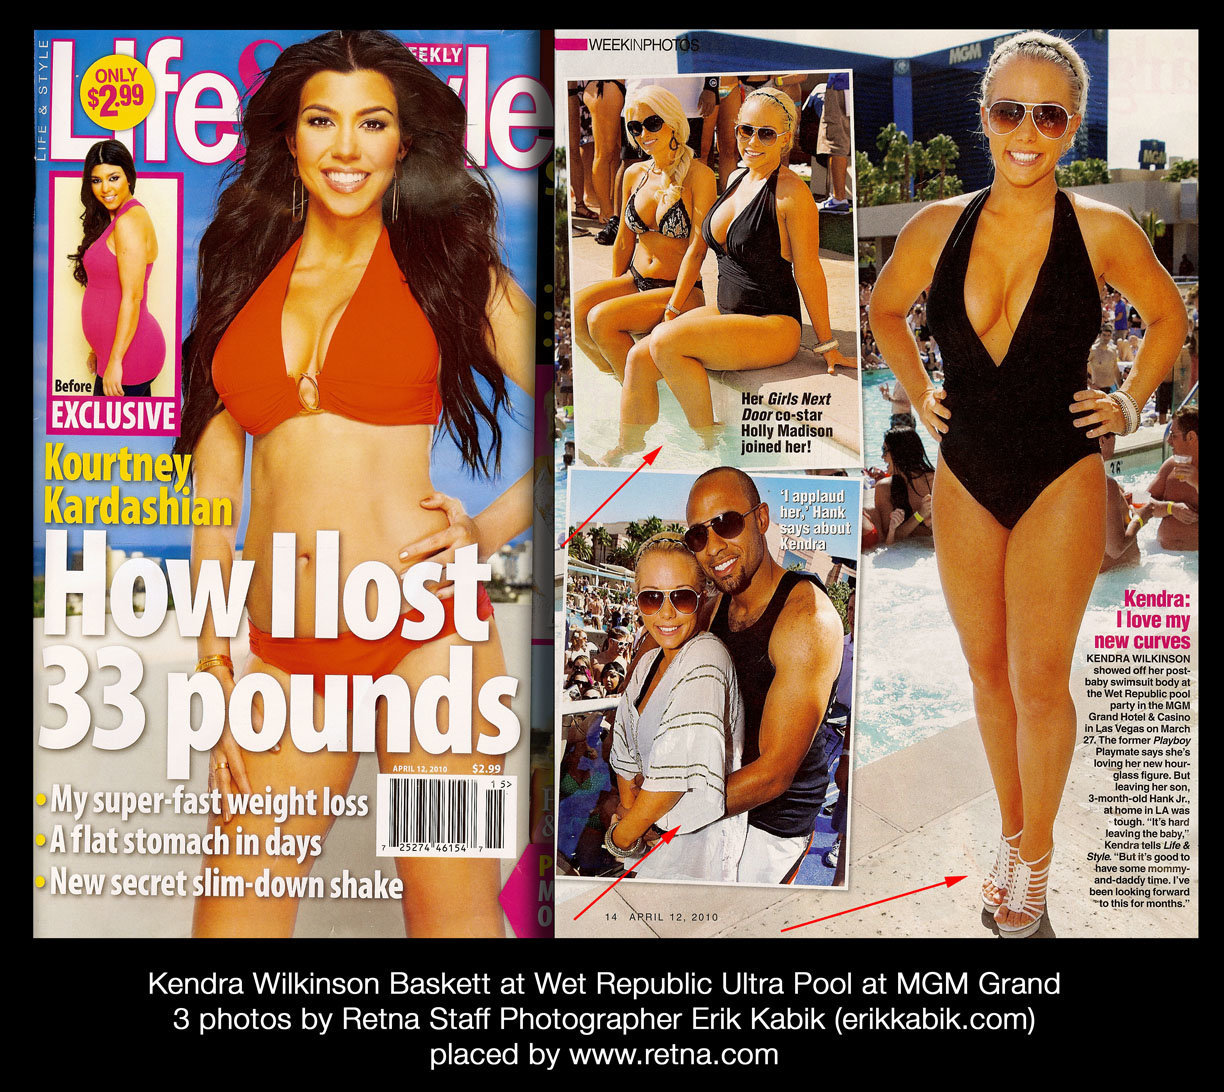 kendra_lifestyle_april2010.jpg